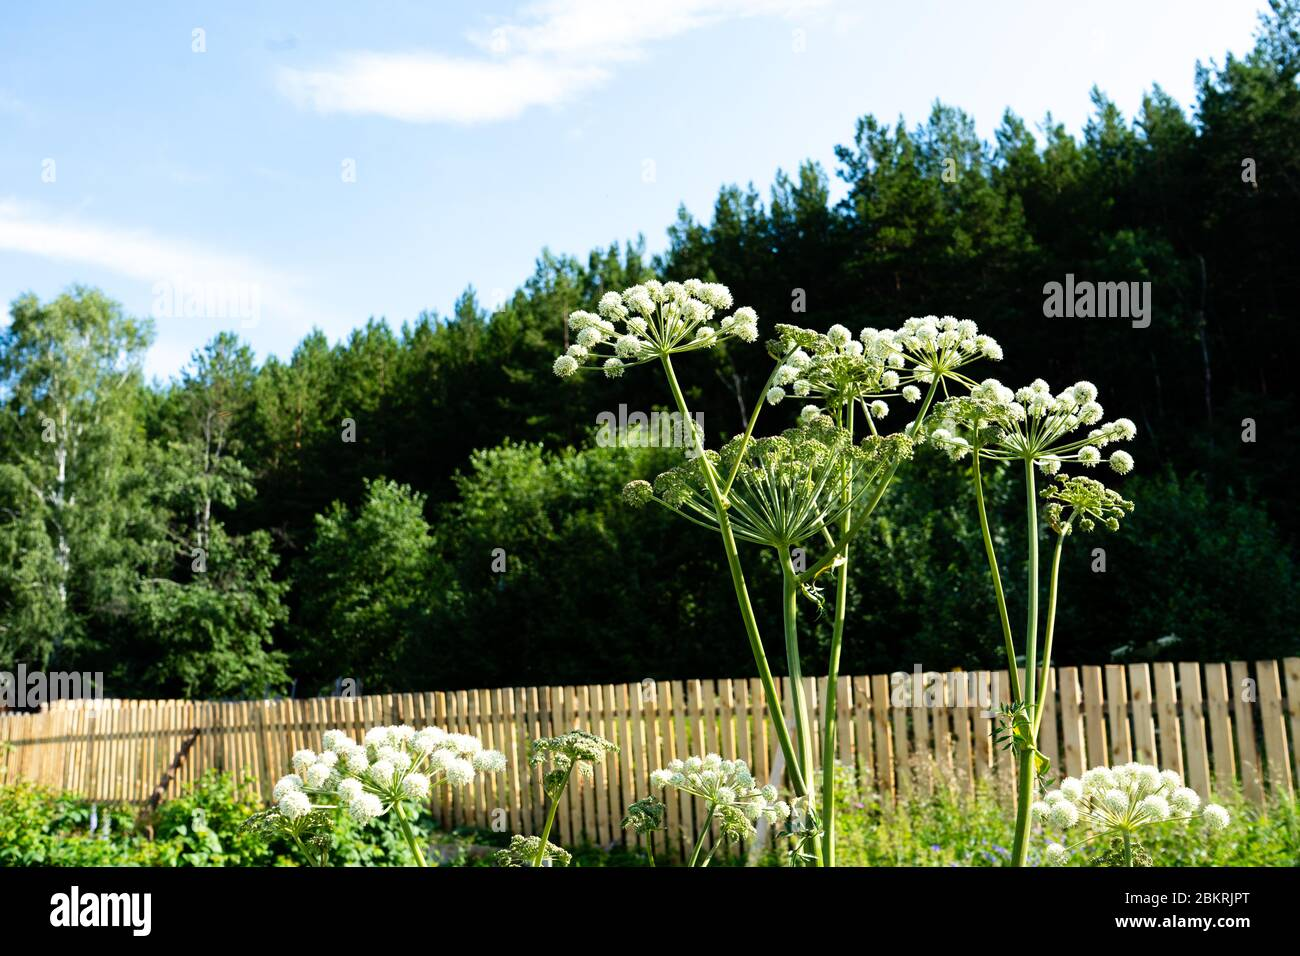 Norwegian Garden High Resolution Stock Photography And Images Alamy